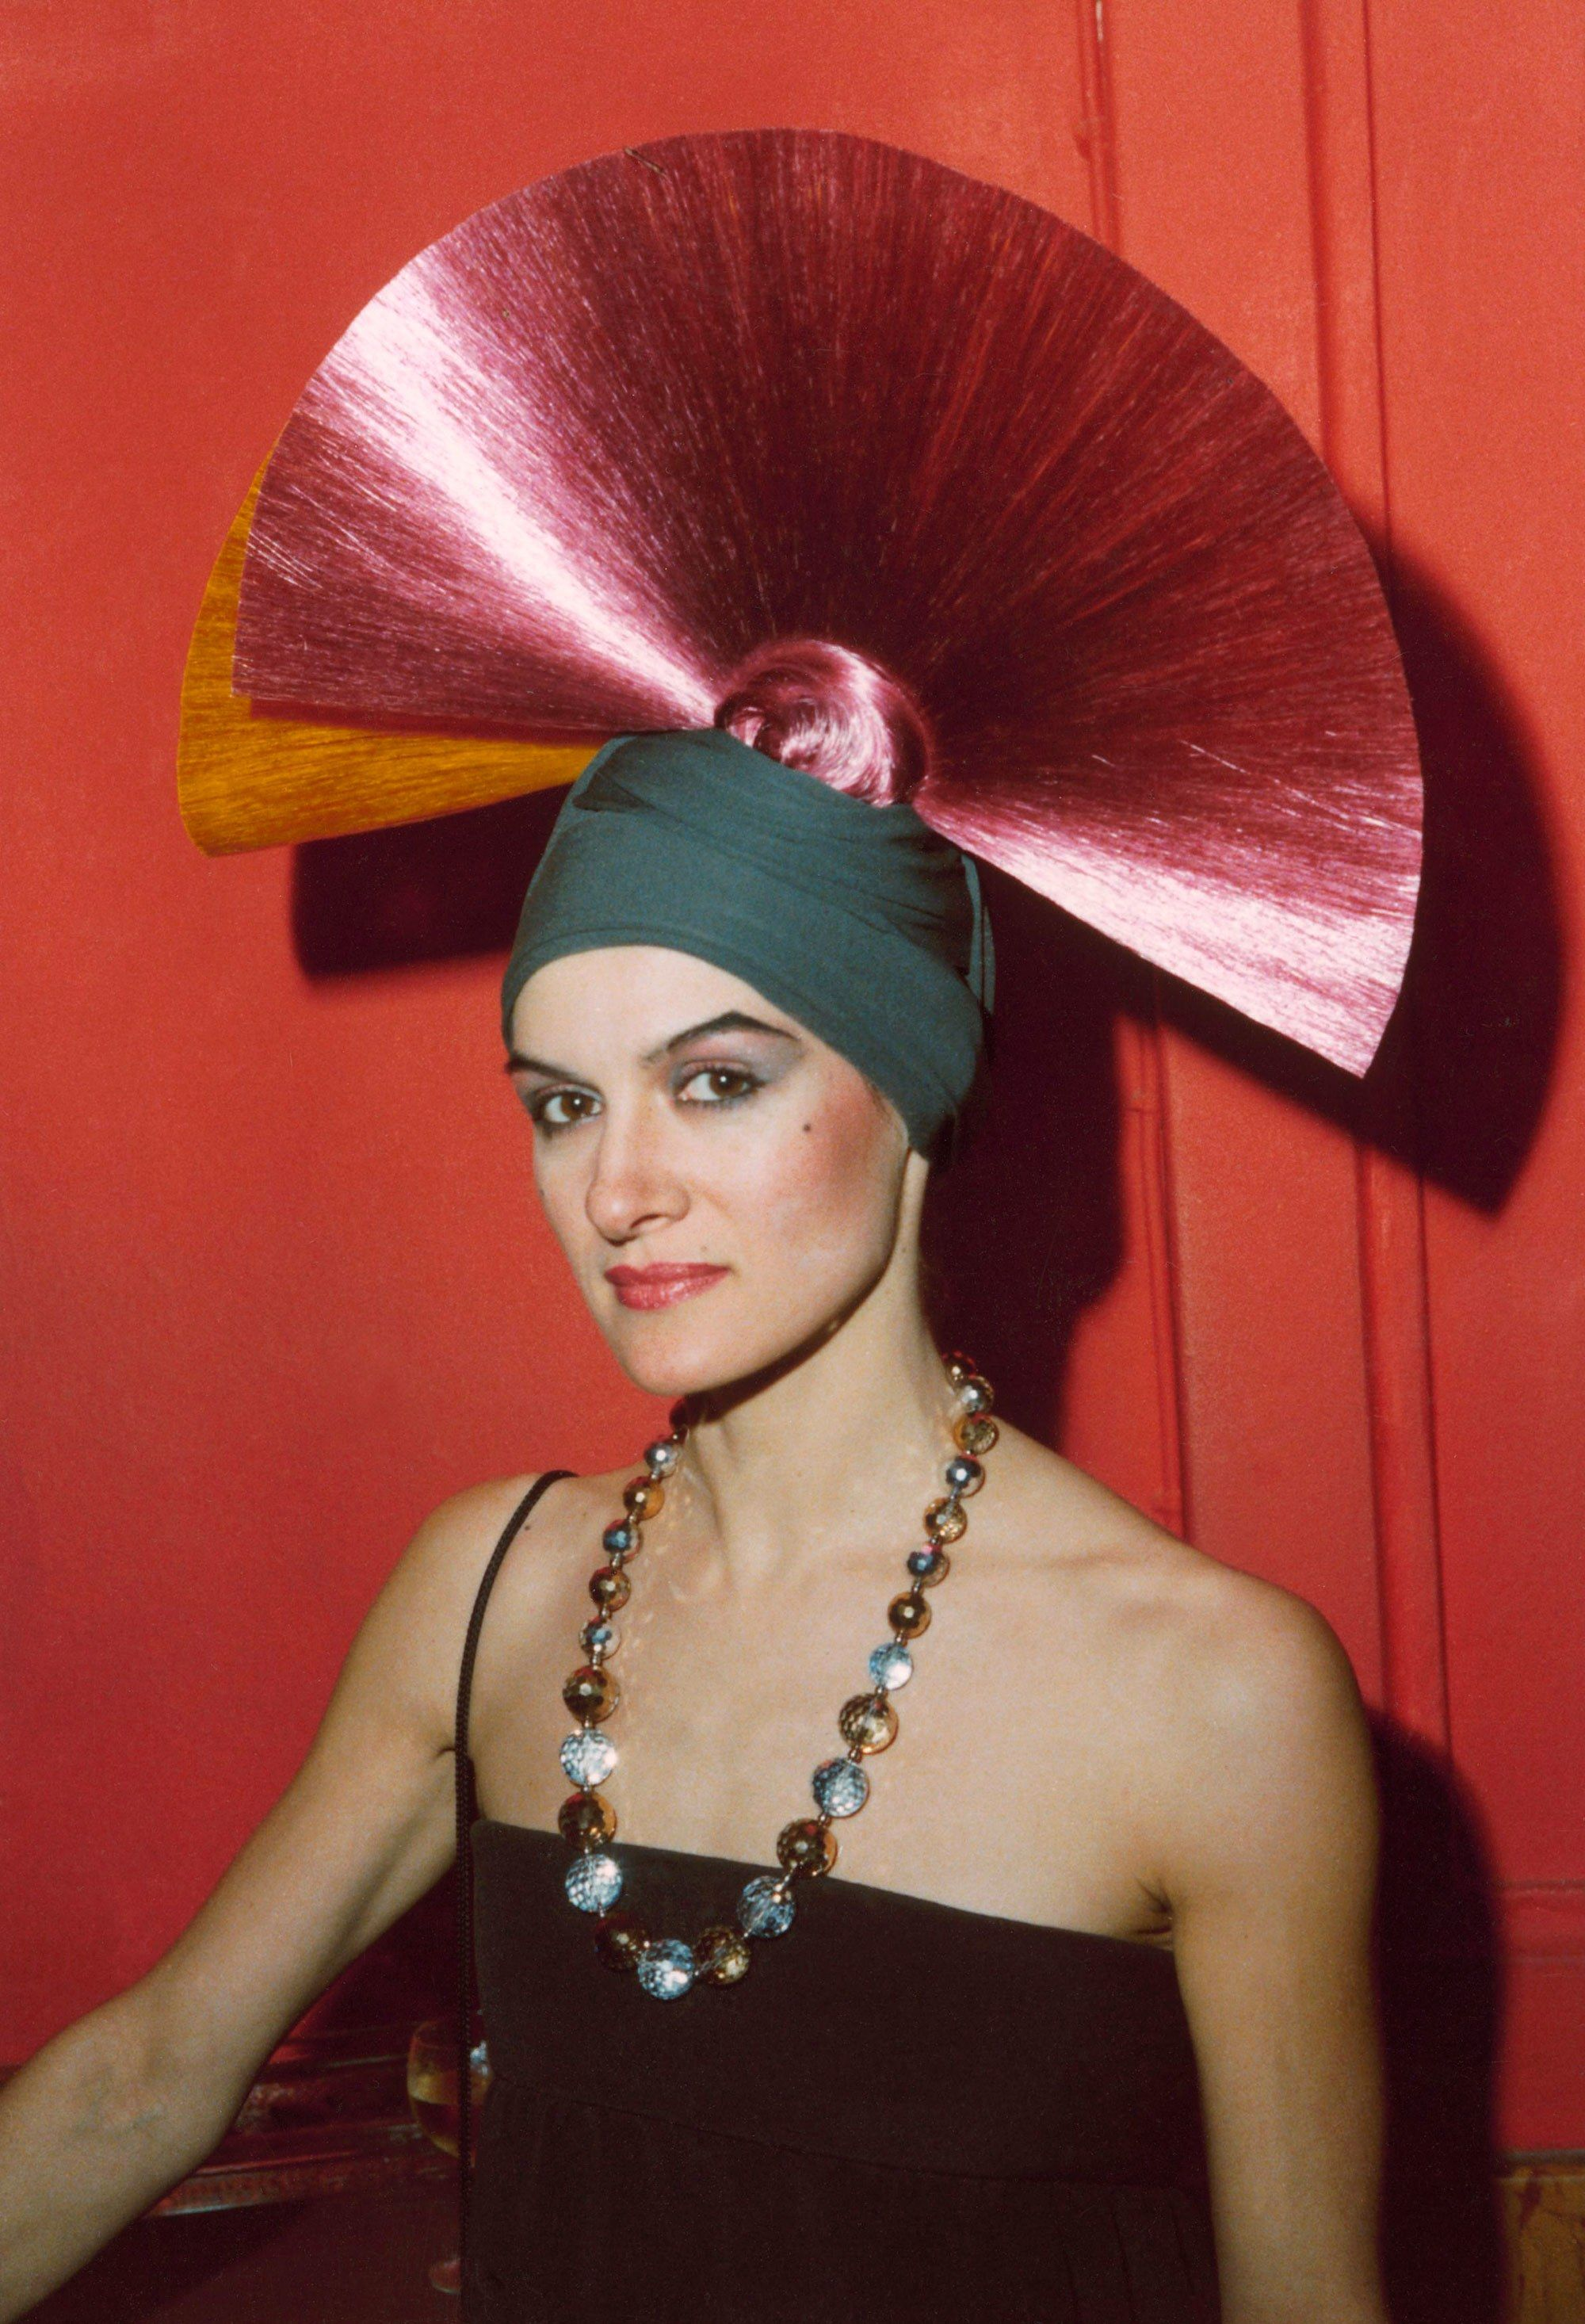 Paloma Picasso Paloma Picasso Wearing The Only Headscarf With Hair Fans Peeking